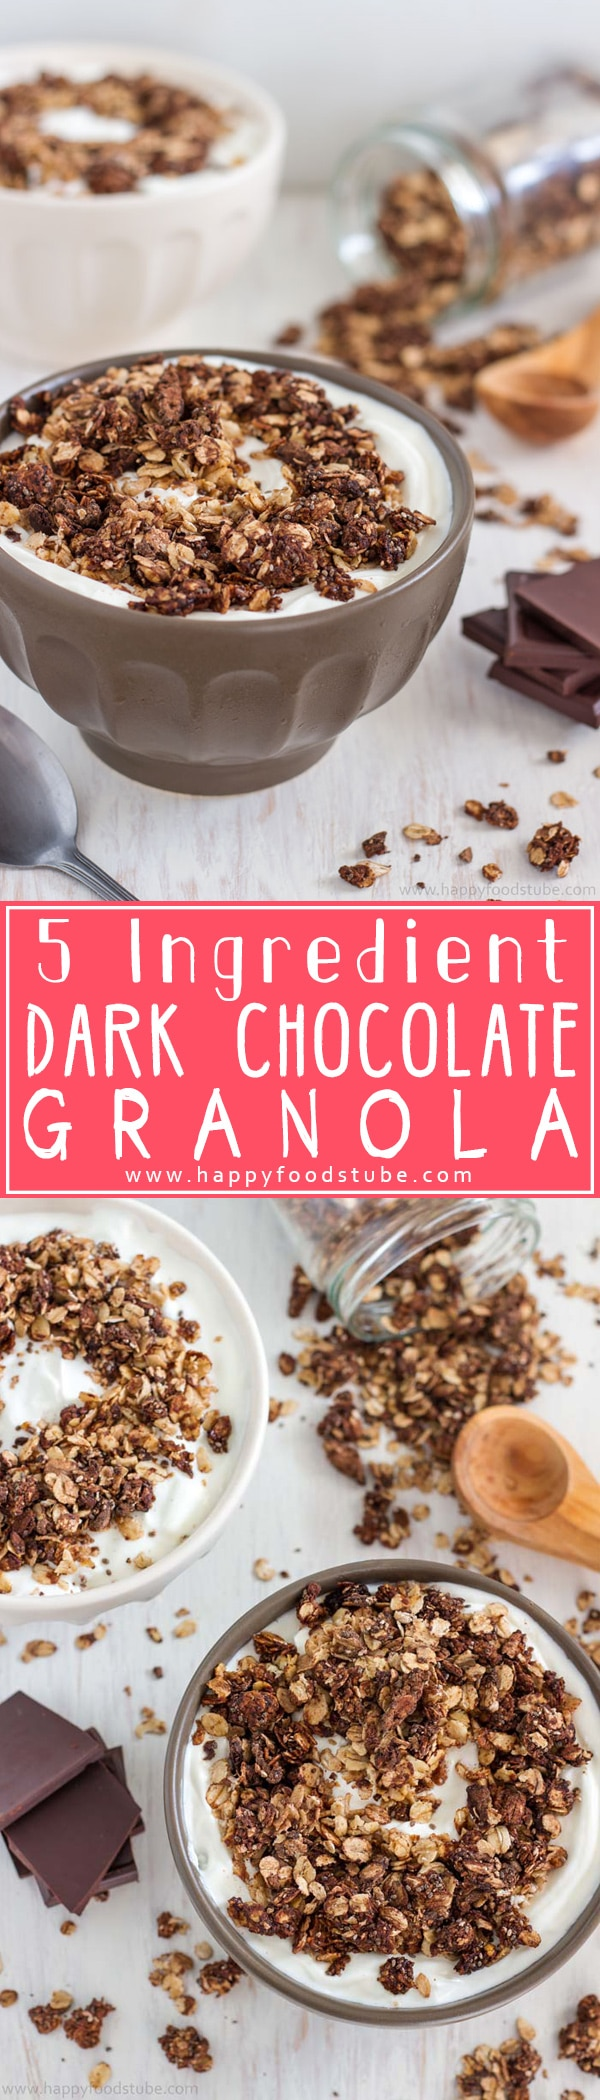 Homemade 5 Ingredient Dark Chocolate Granola Recipe. This healthy breakfast or snack is also gluten free & nut free! | happyfoodstube.com